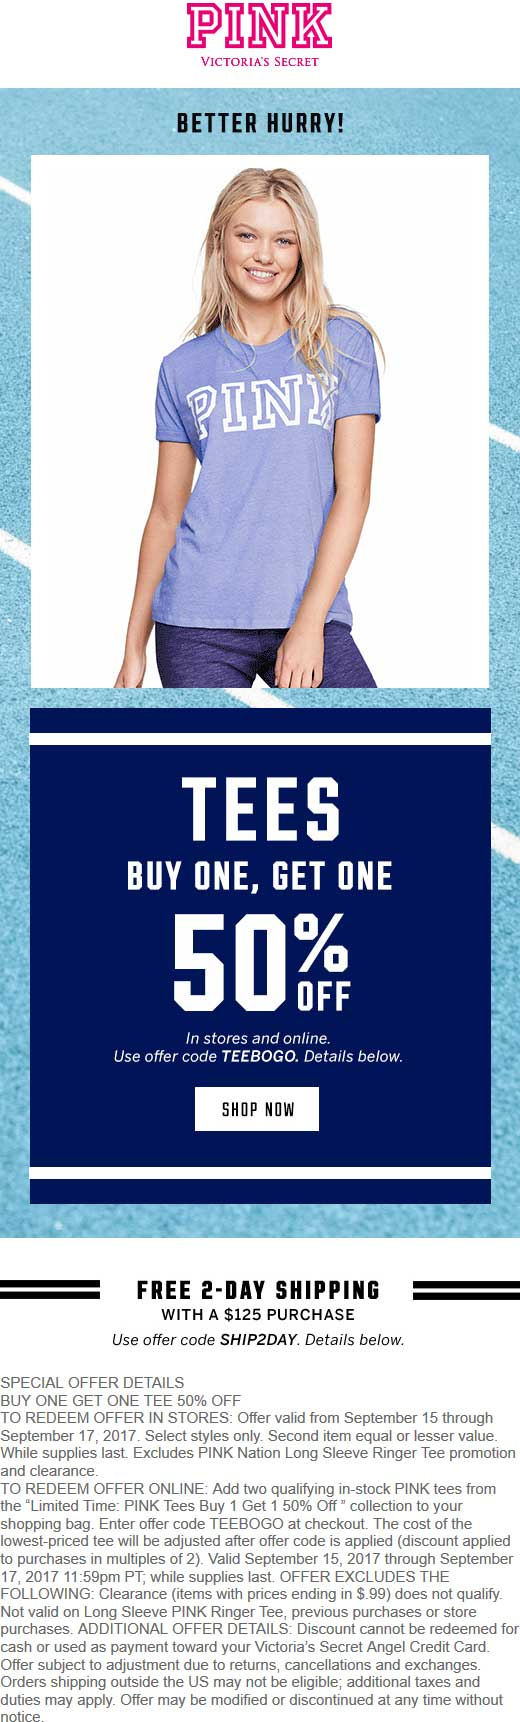 Victorias Secret Coupon March 2019 Second tee 50% off at Victorias Secret PINK, or online via promo code TEEBOGO